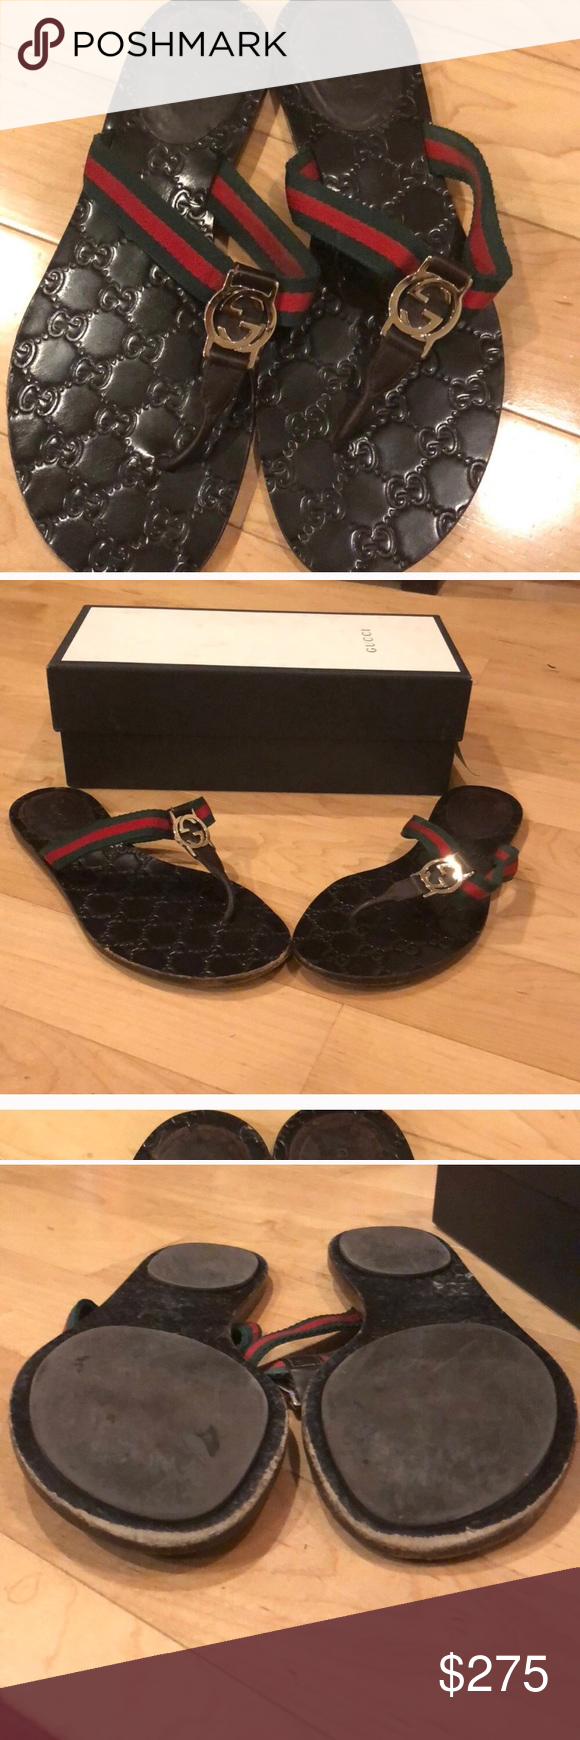 adddbc1607d1bb Gucci authentic sandals 39 1 2 Lots of wear left really good condition with  original box 2 duster bags red green ribbon straps in stores now original  420+ ...